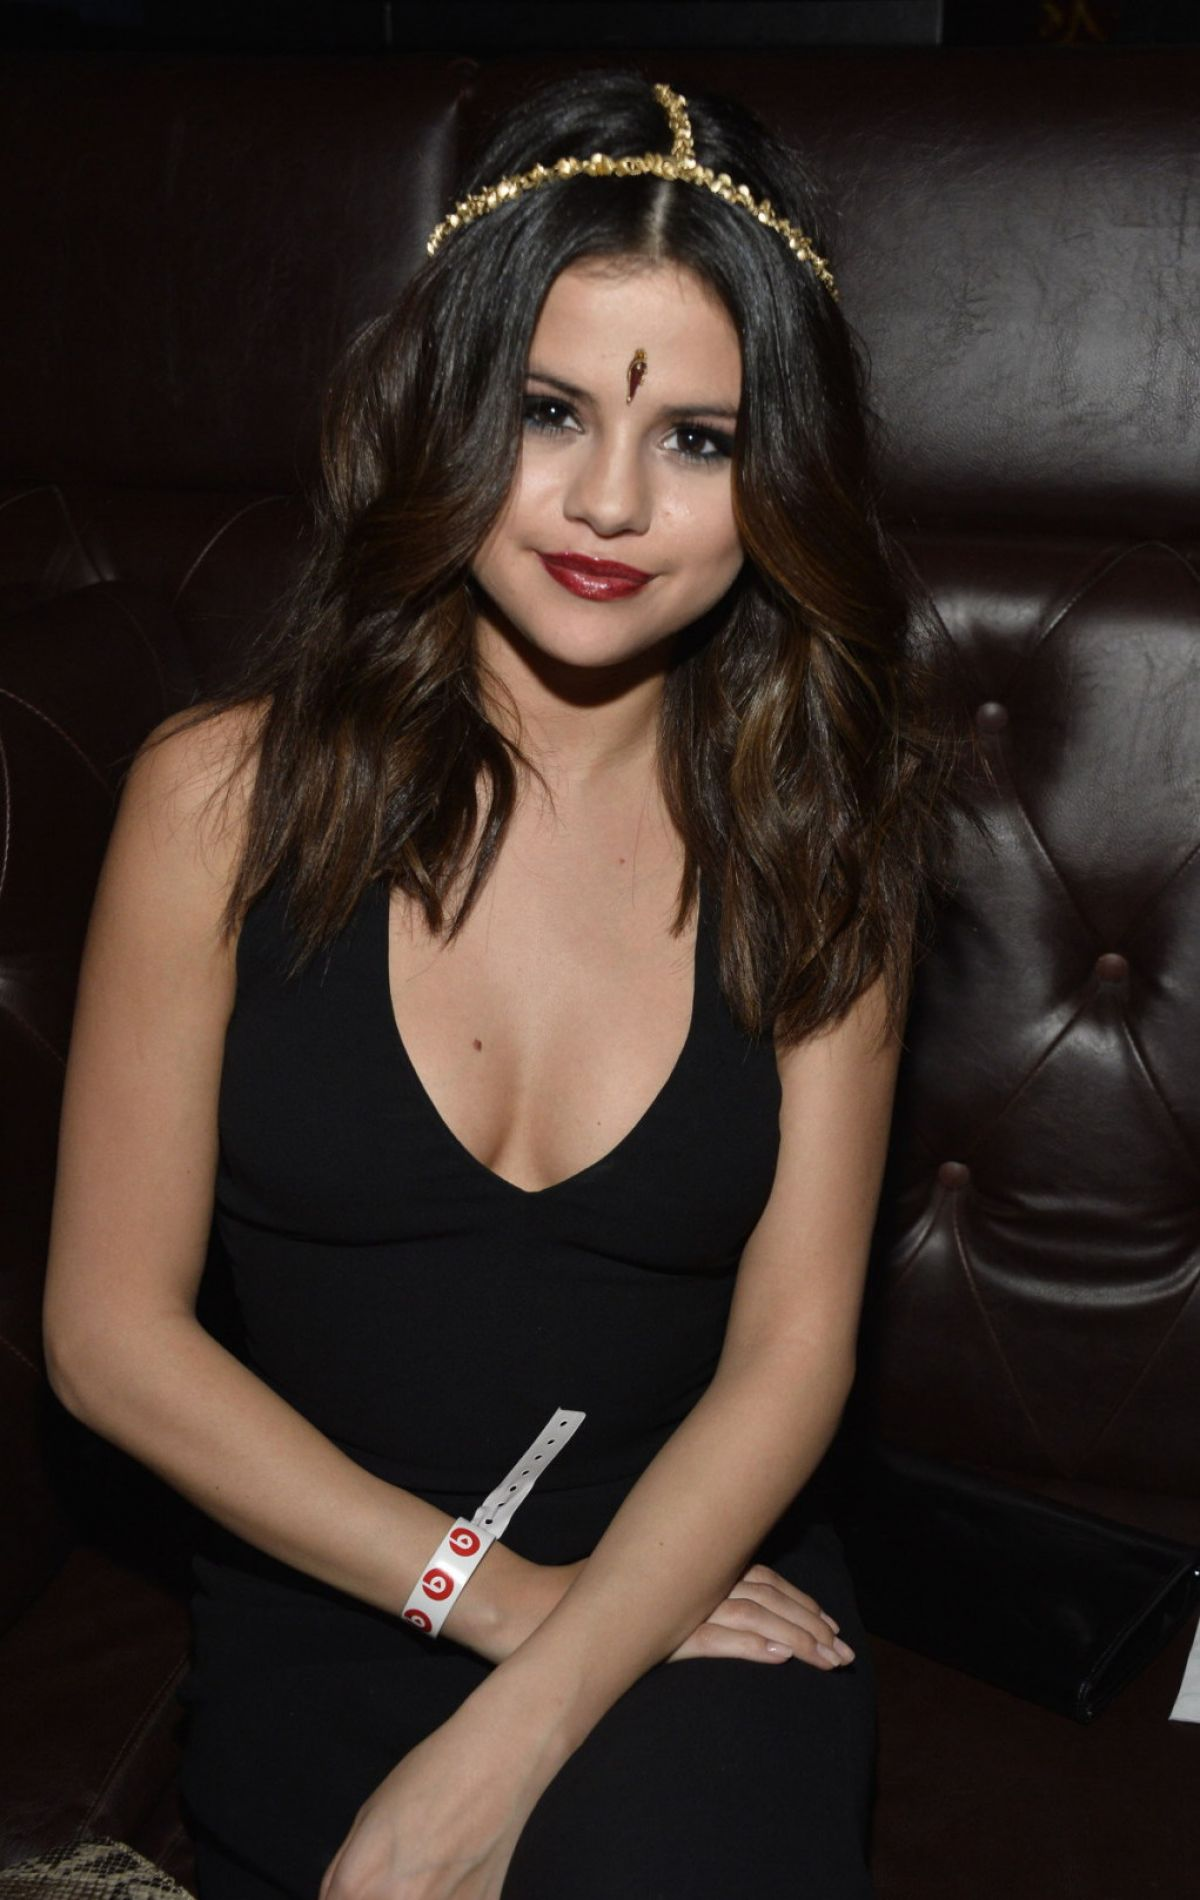 SELENA GOMEZ at Beats Music Launch Party in Los Angeles